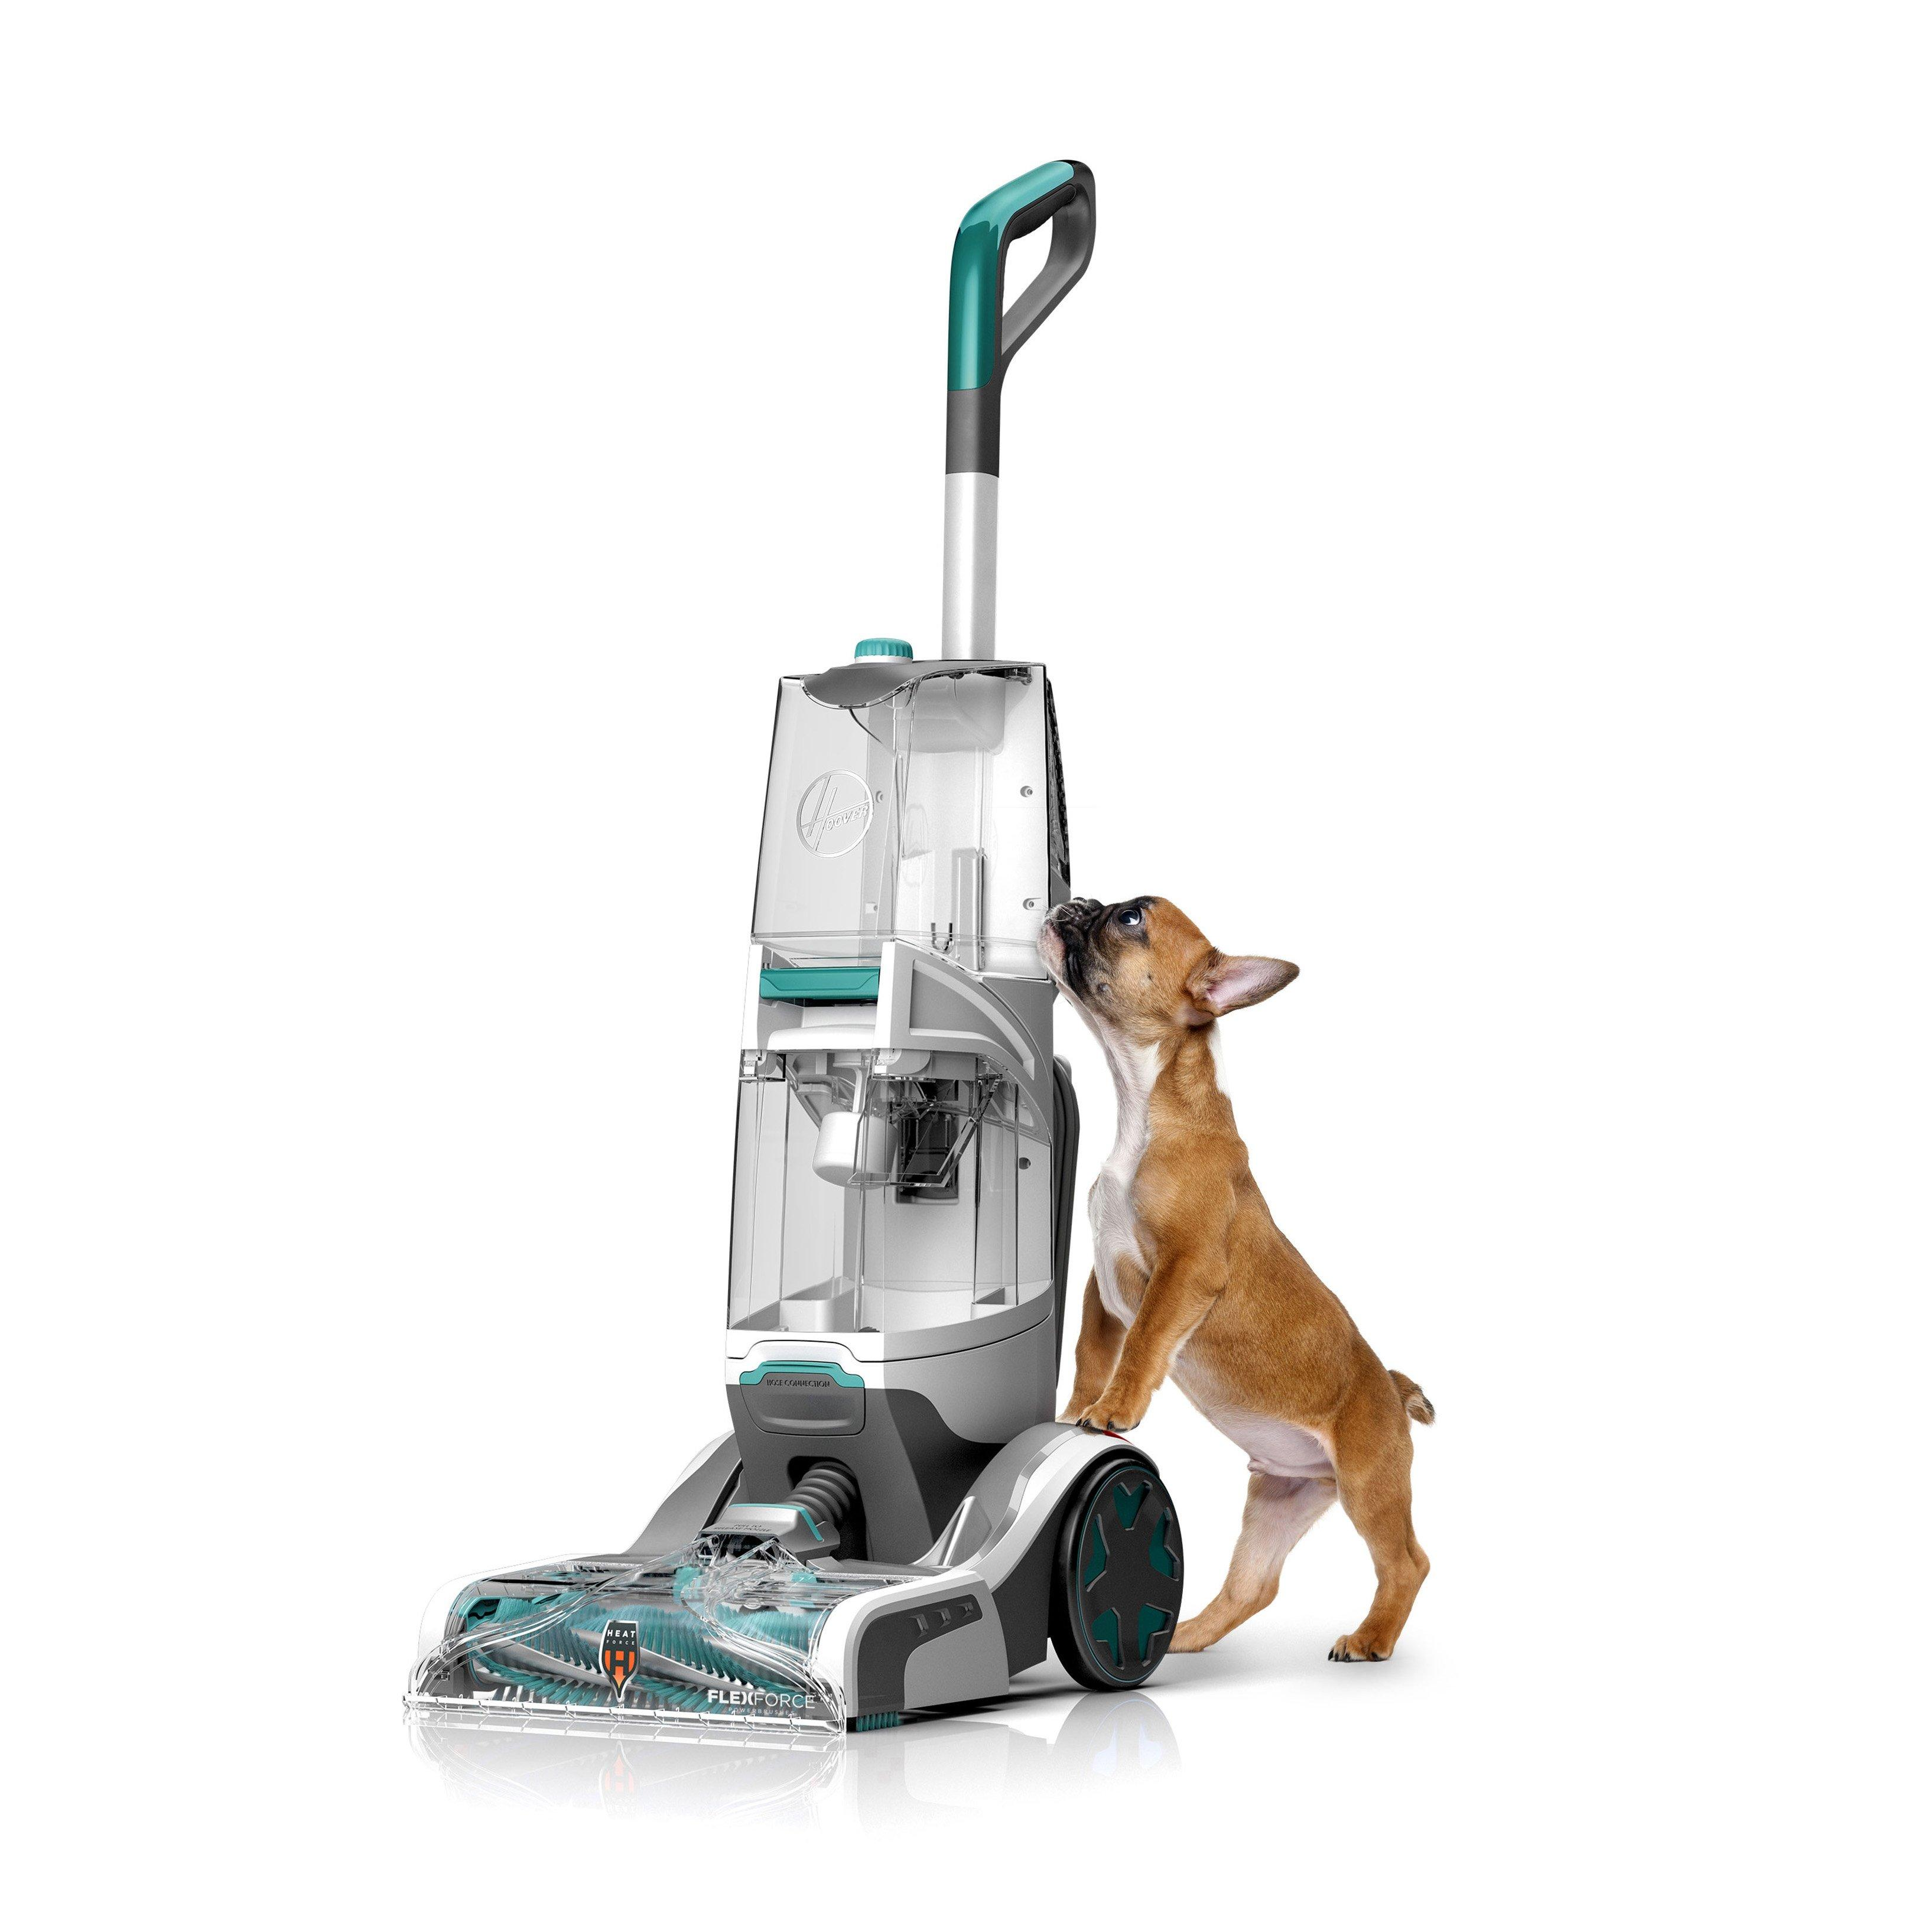 hight resolution of smartwash automatic carpet cleaner fh52000